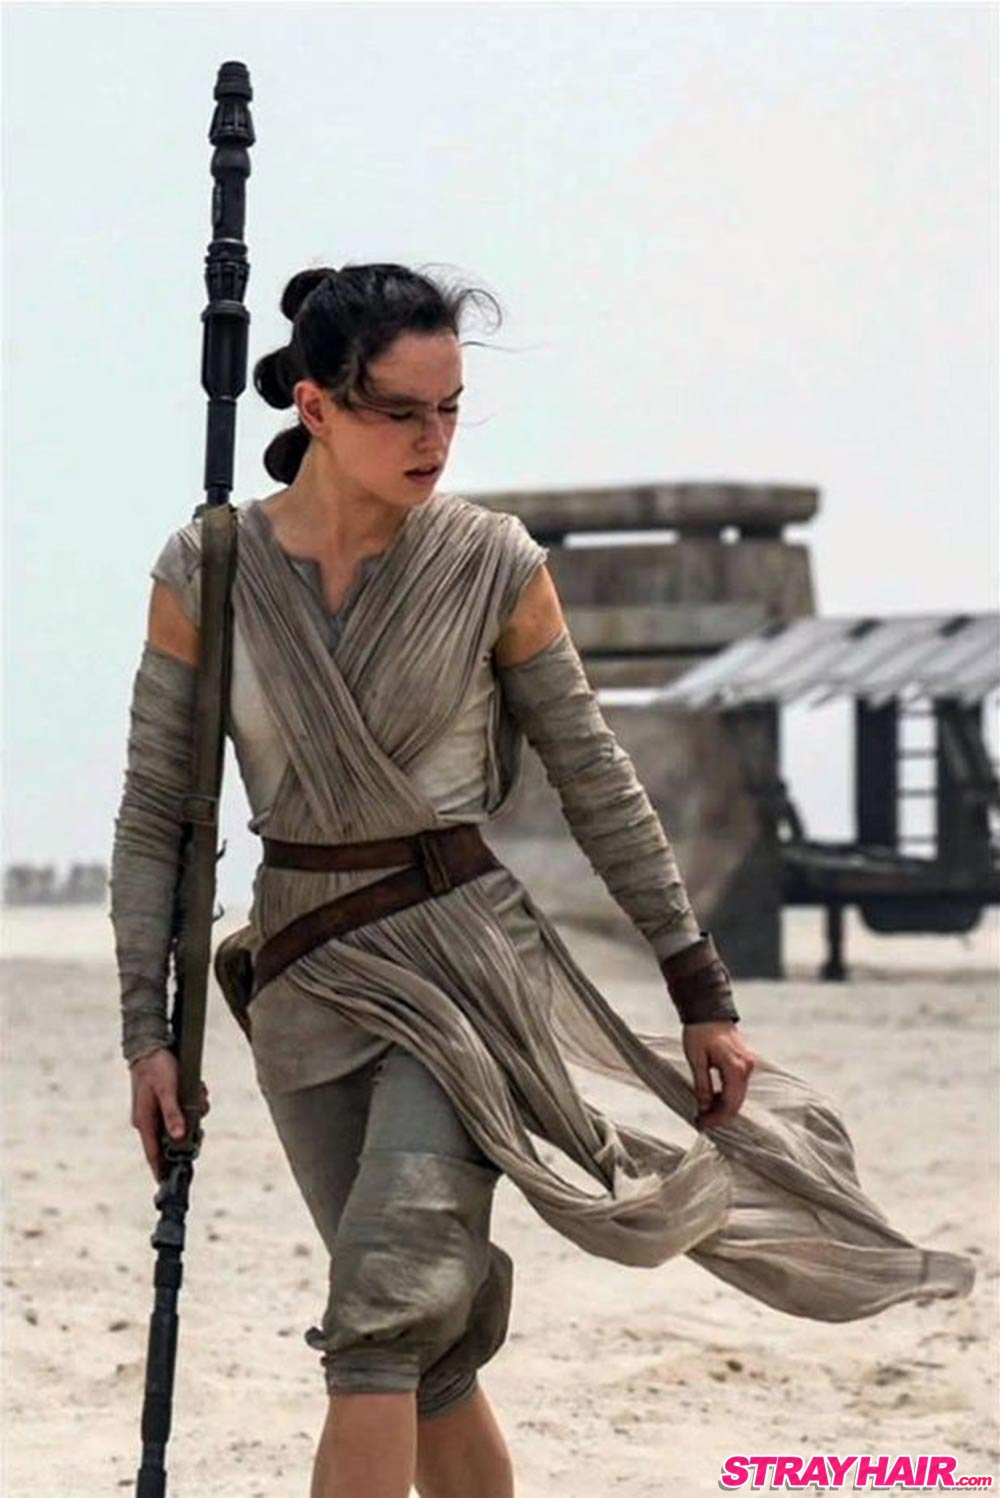 rey triknot hairstyle in star wars episode vii the force